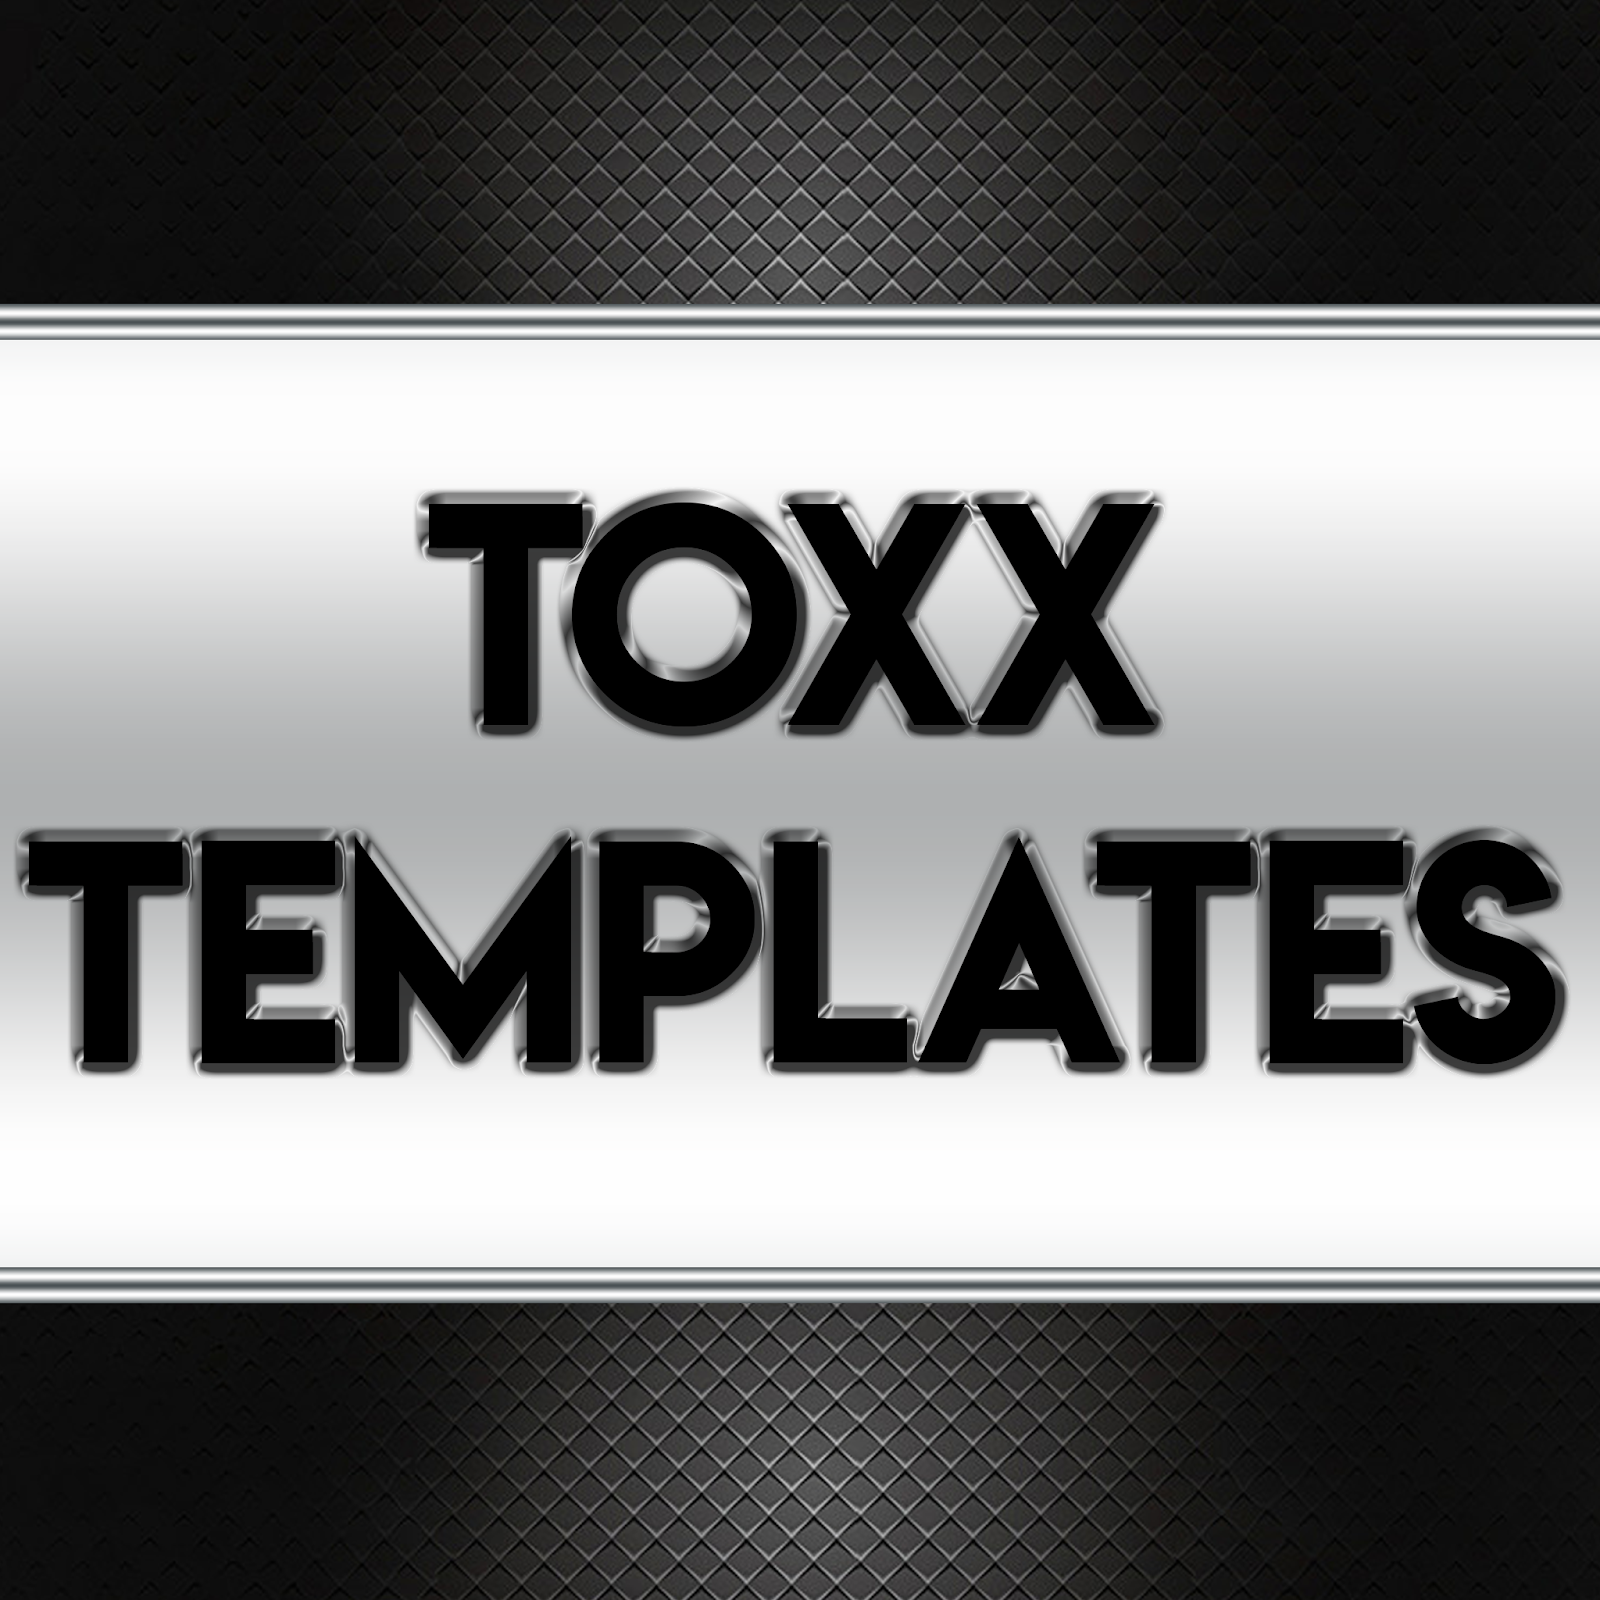 Toxx Templates